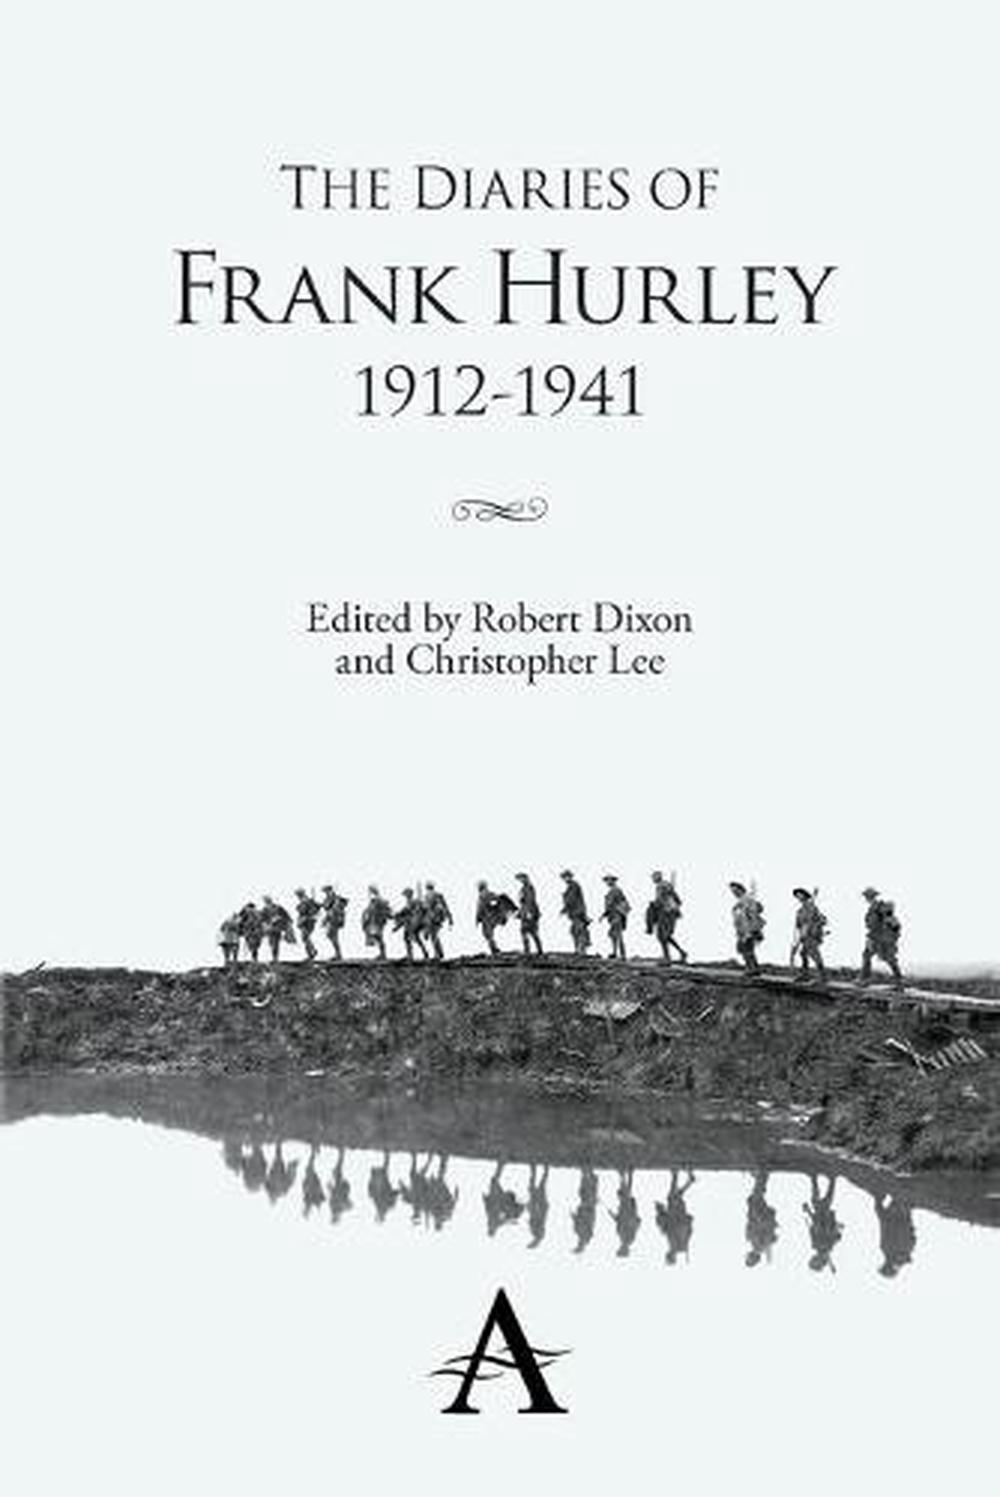 The Diaries Of Frank Hurley 1912 1941 By Frank Hurley border=